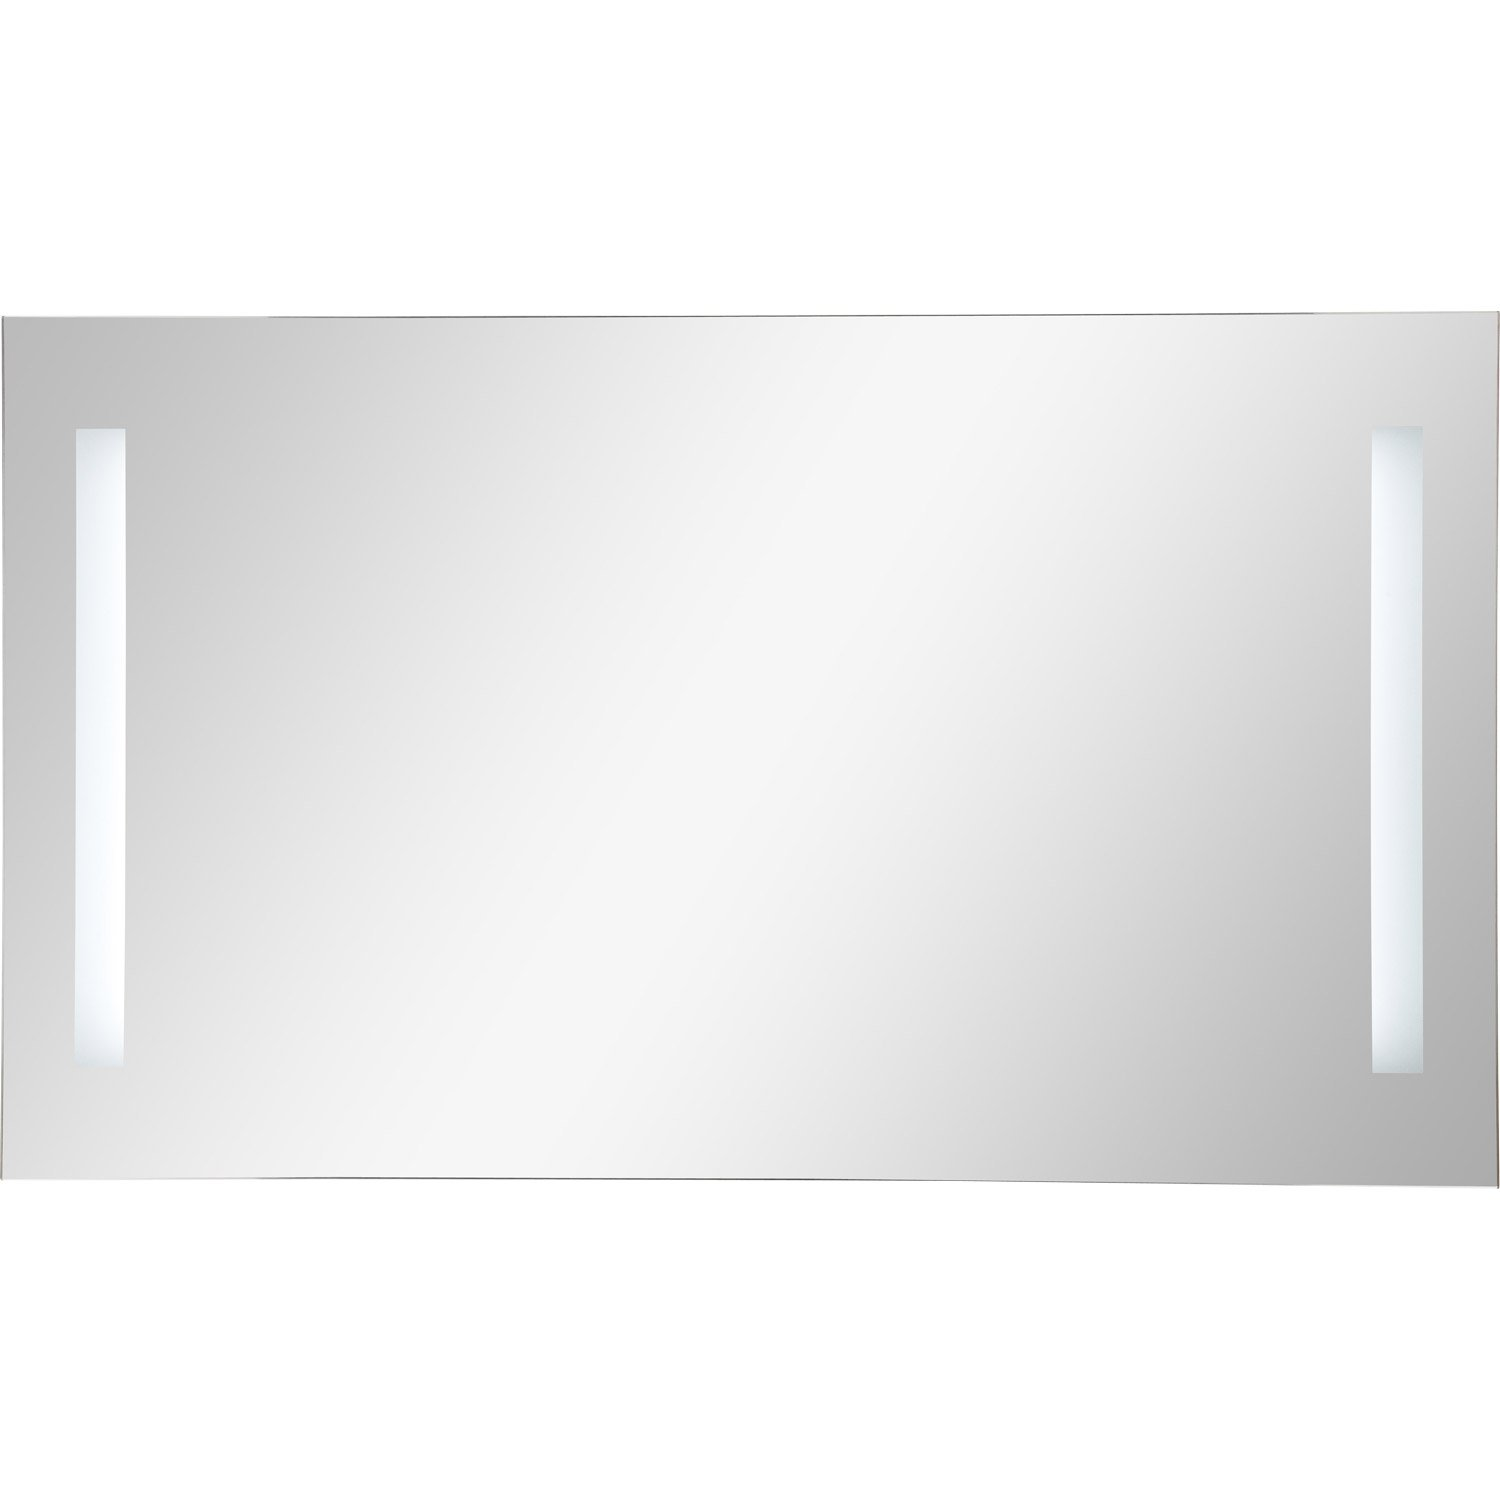 Miroir leroy merlin salle de bain maison design for Salle de bain leroy merlin photo